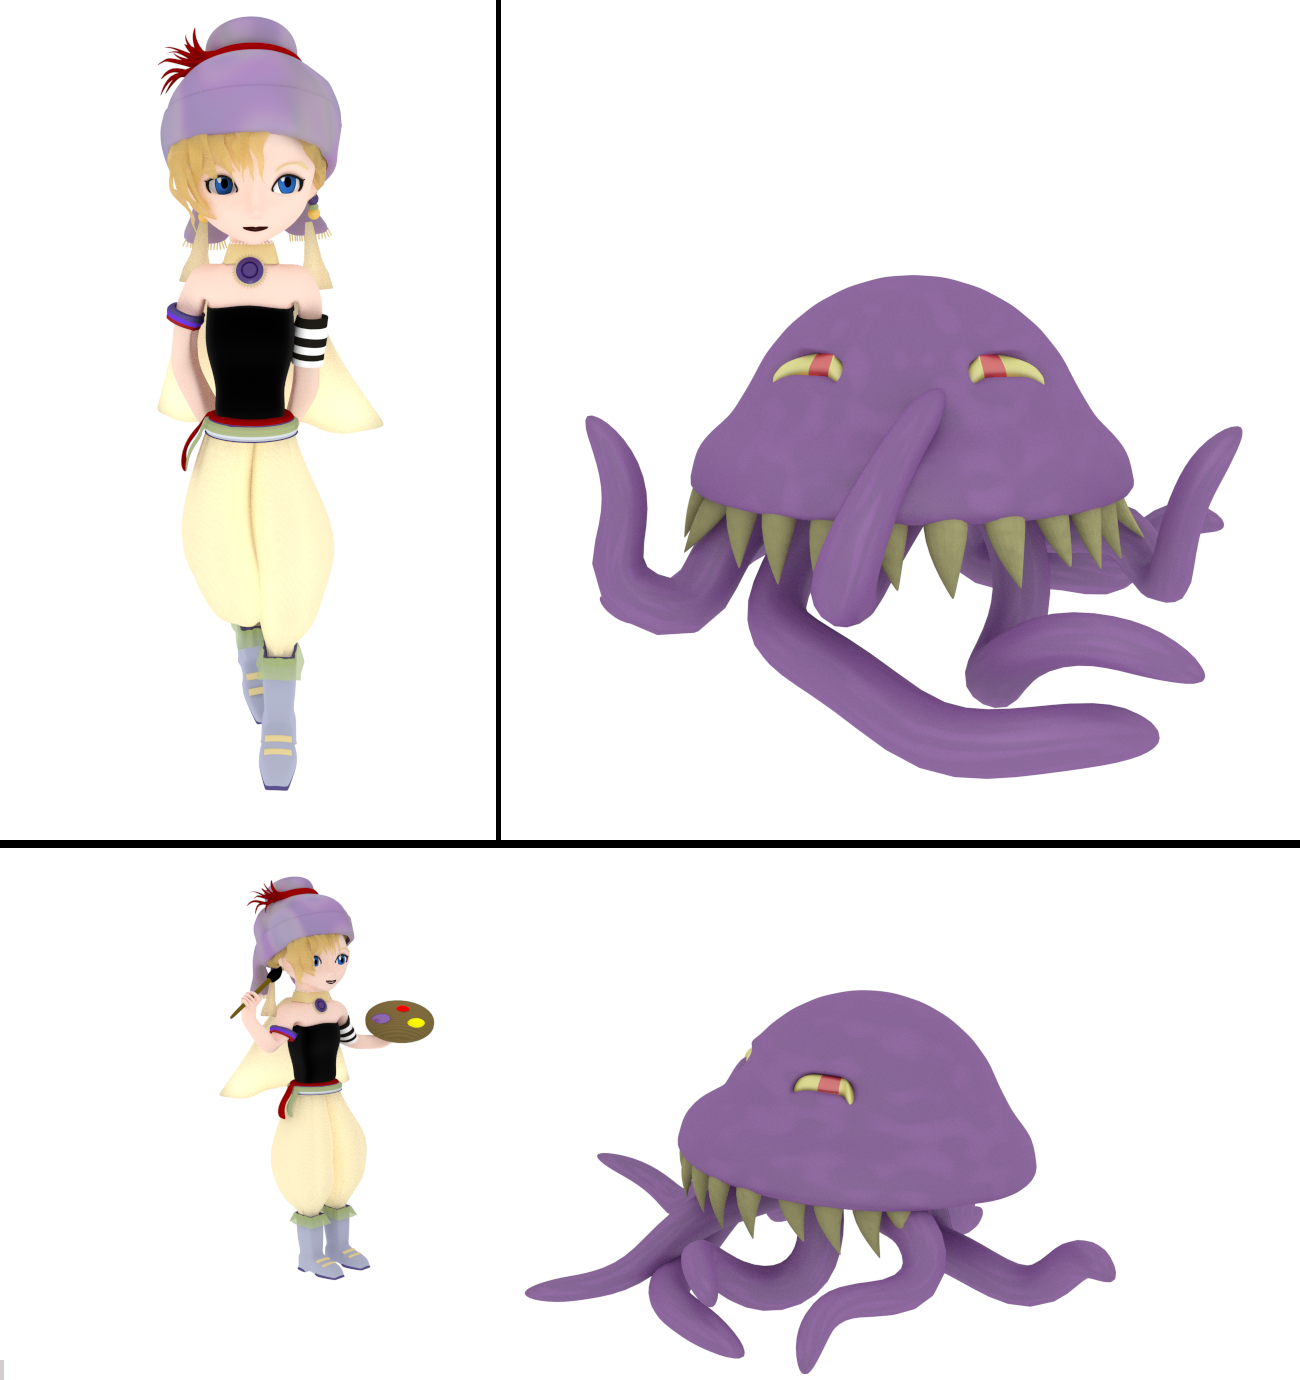 Relm and Ultros by SiverCat